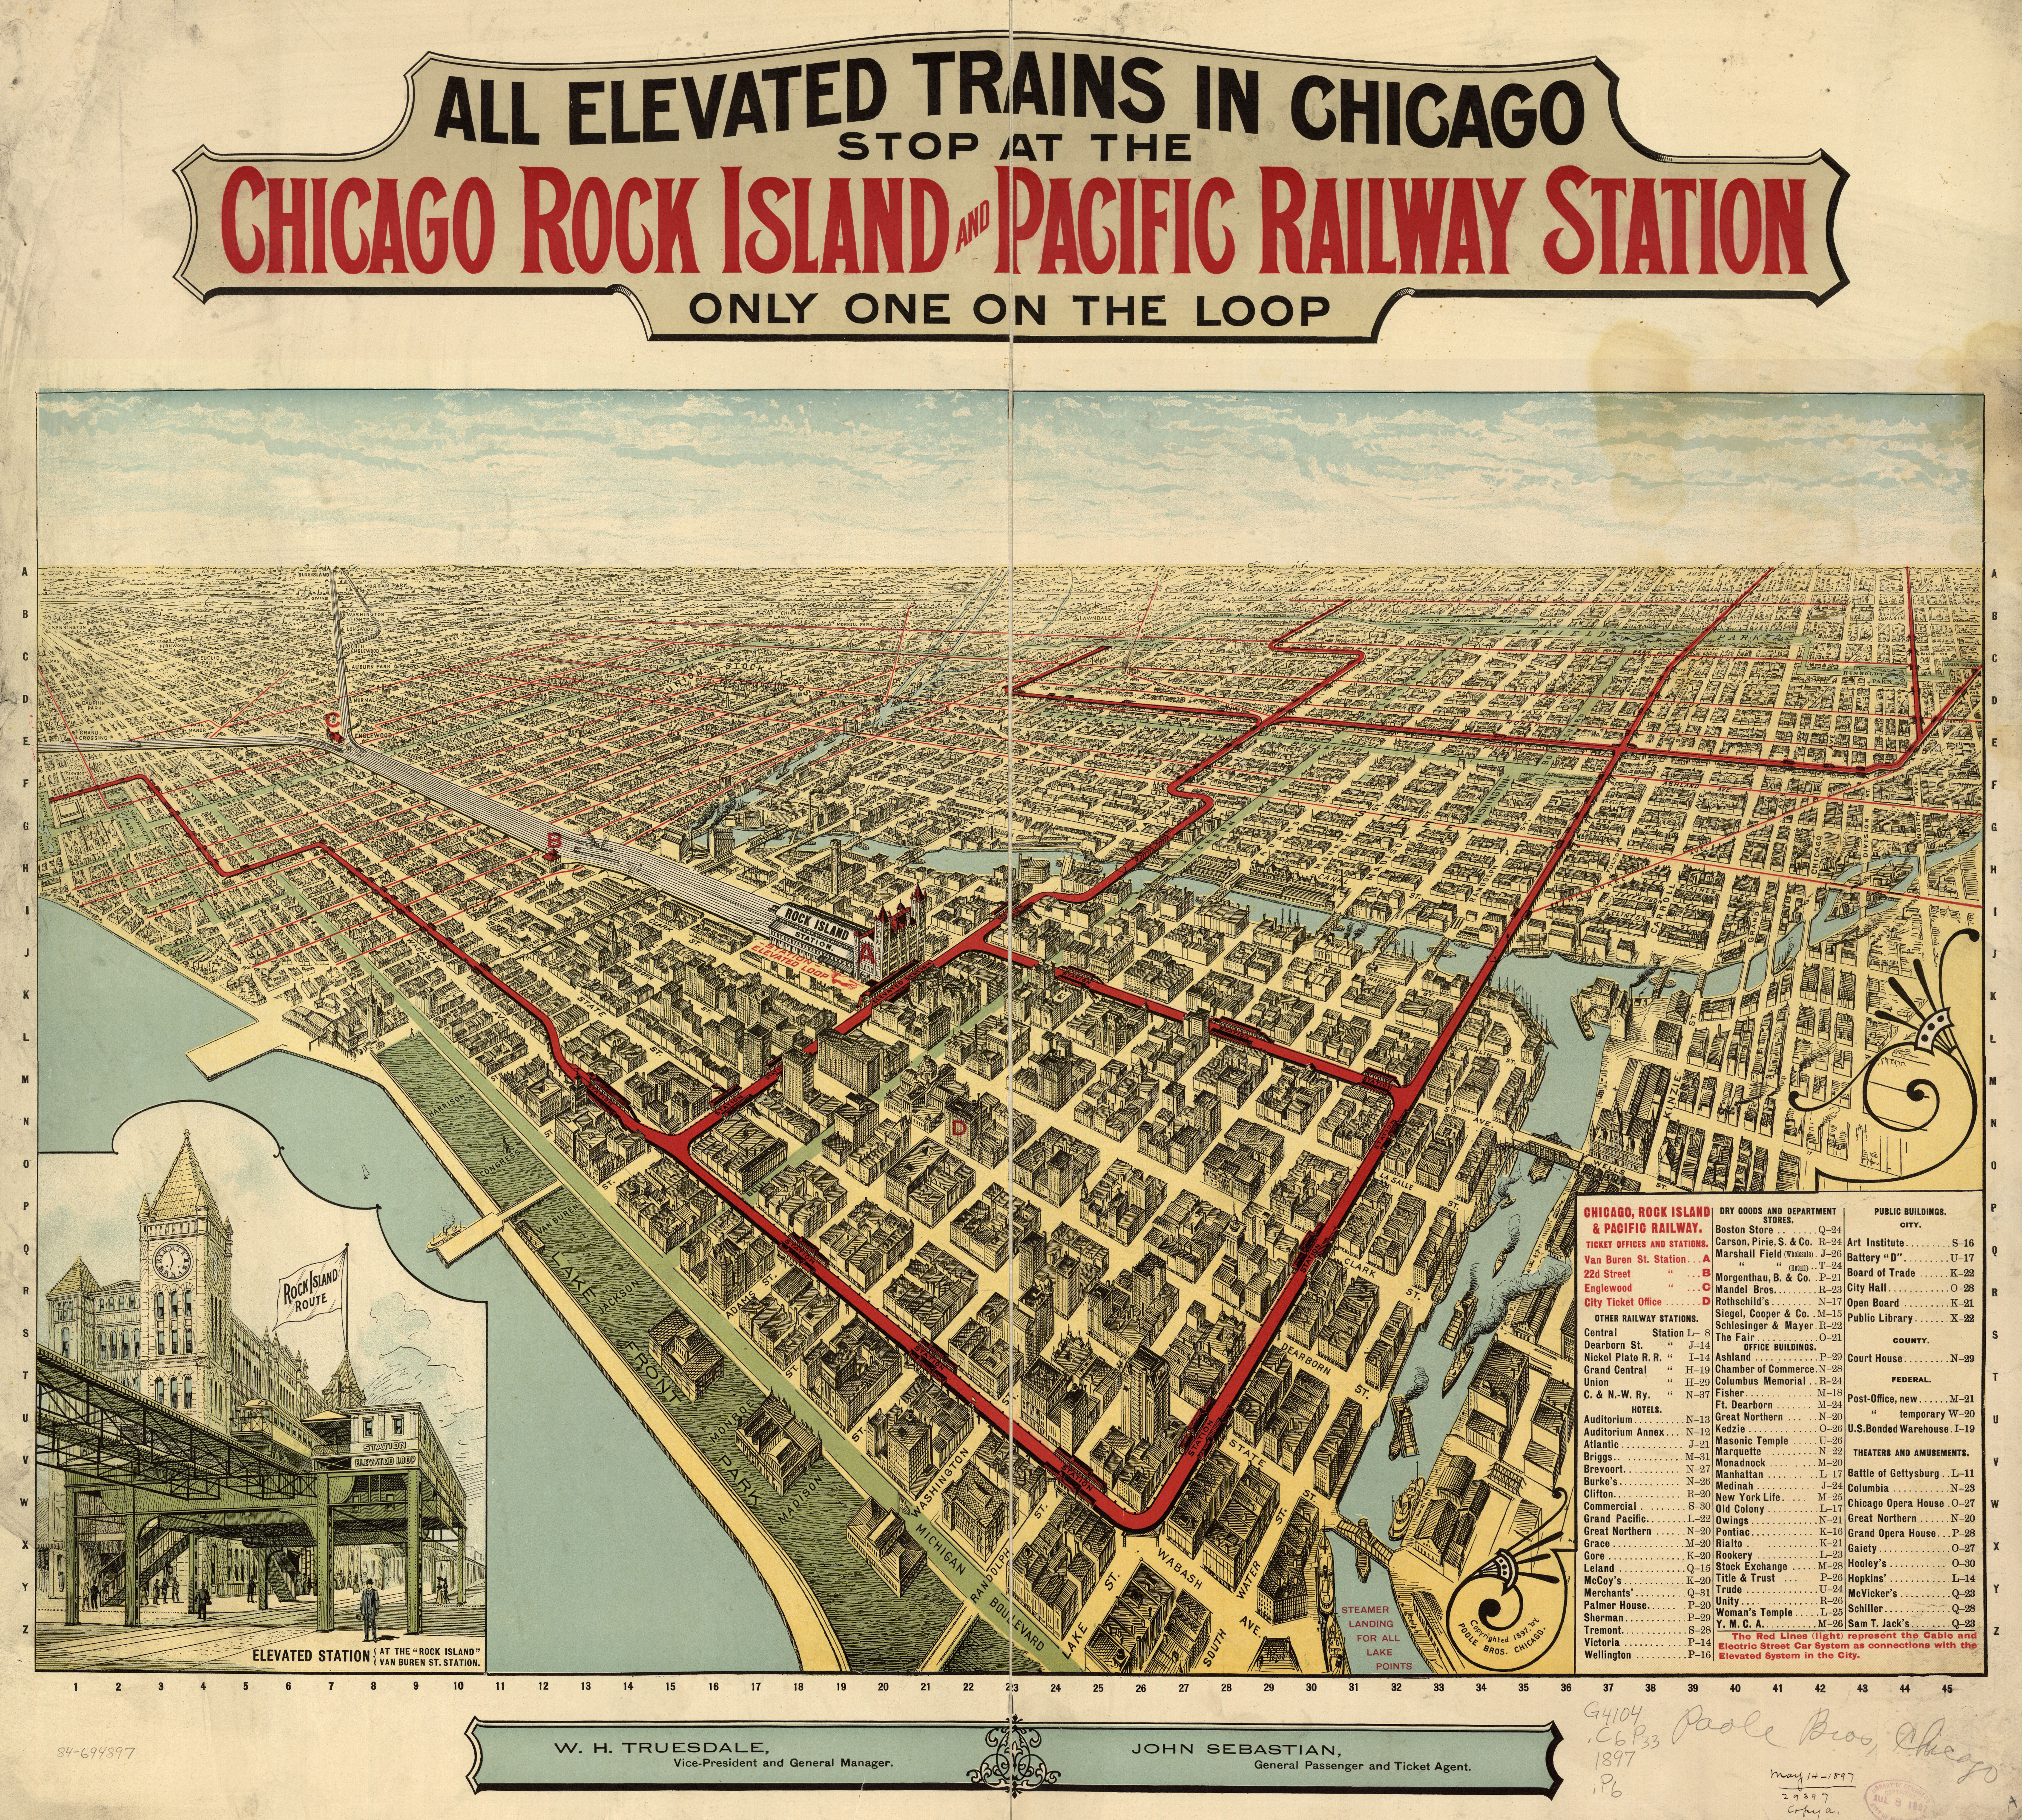 Elevated Trains In Chicago - Chicago map of trains